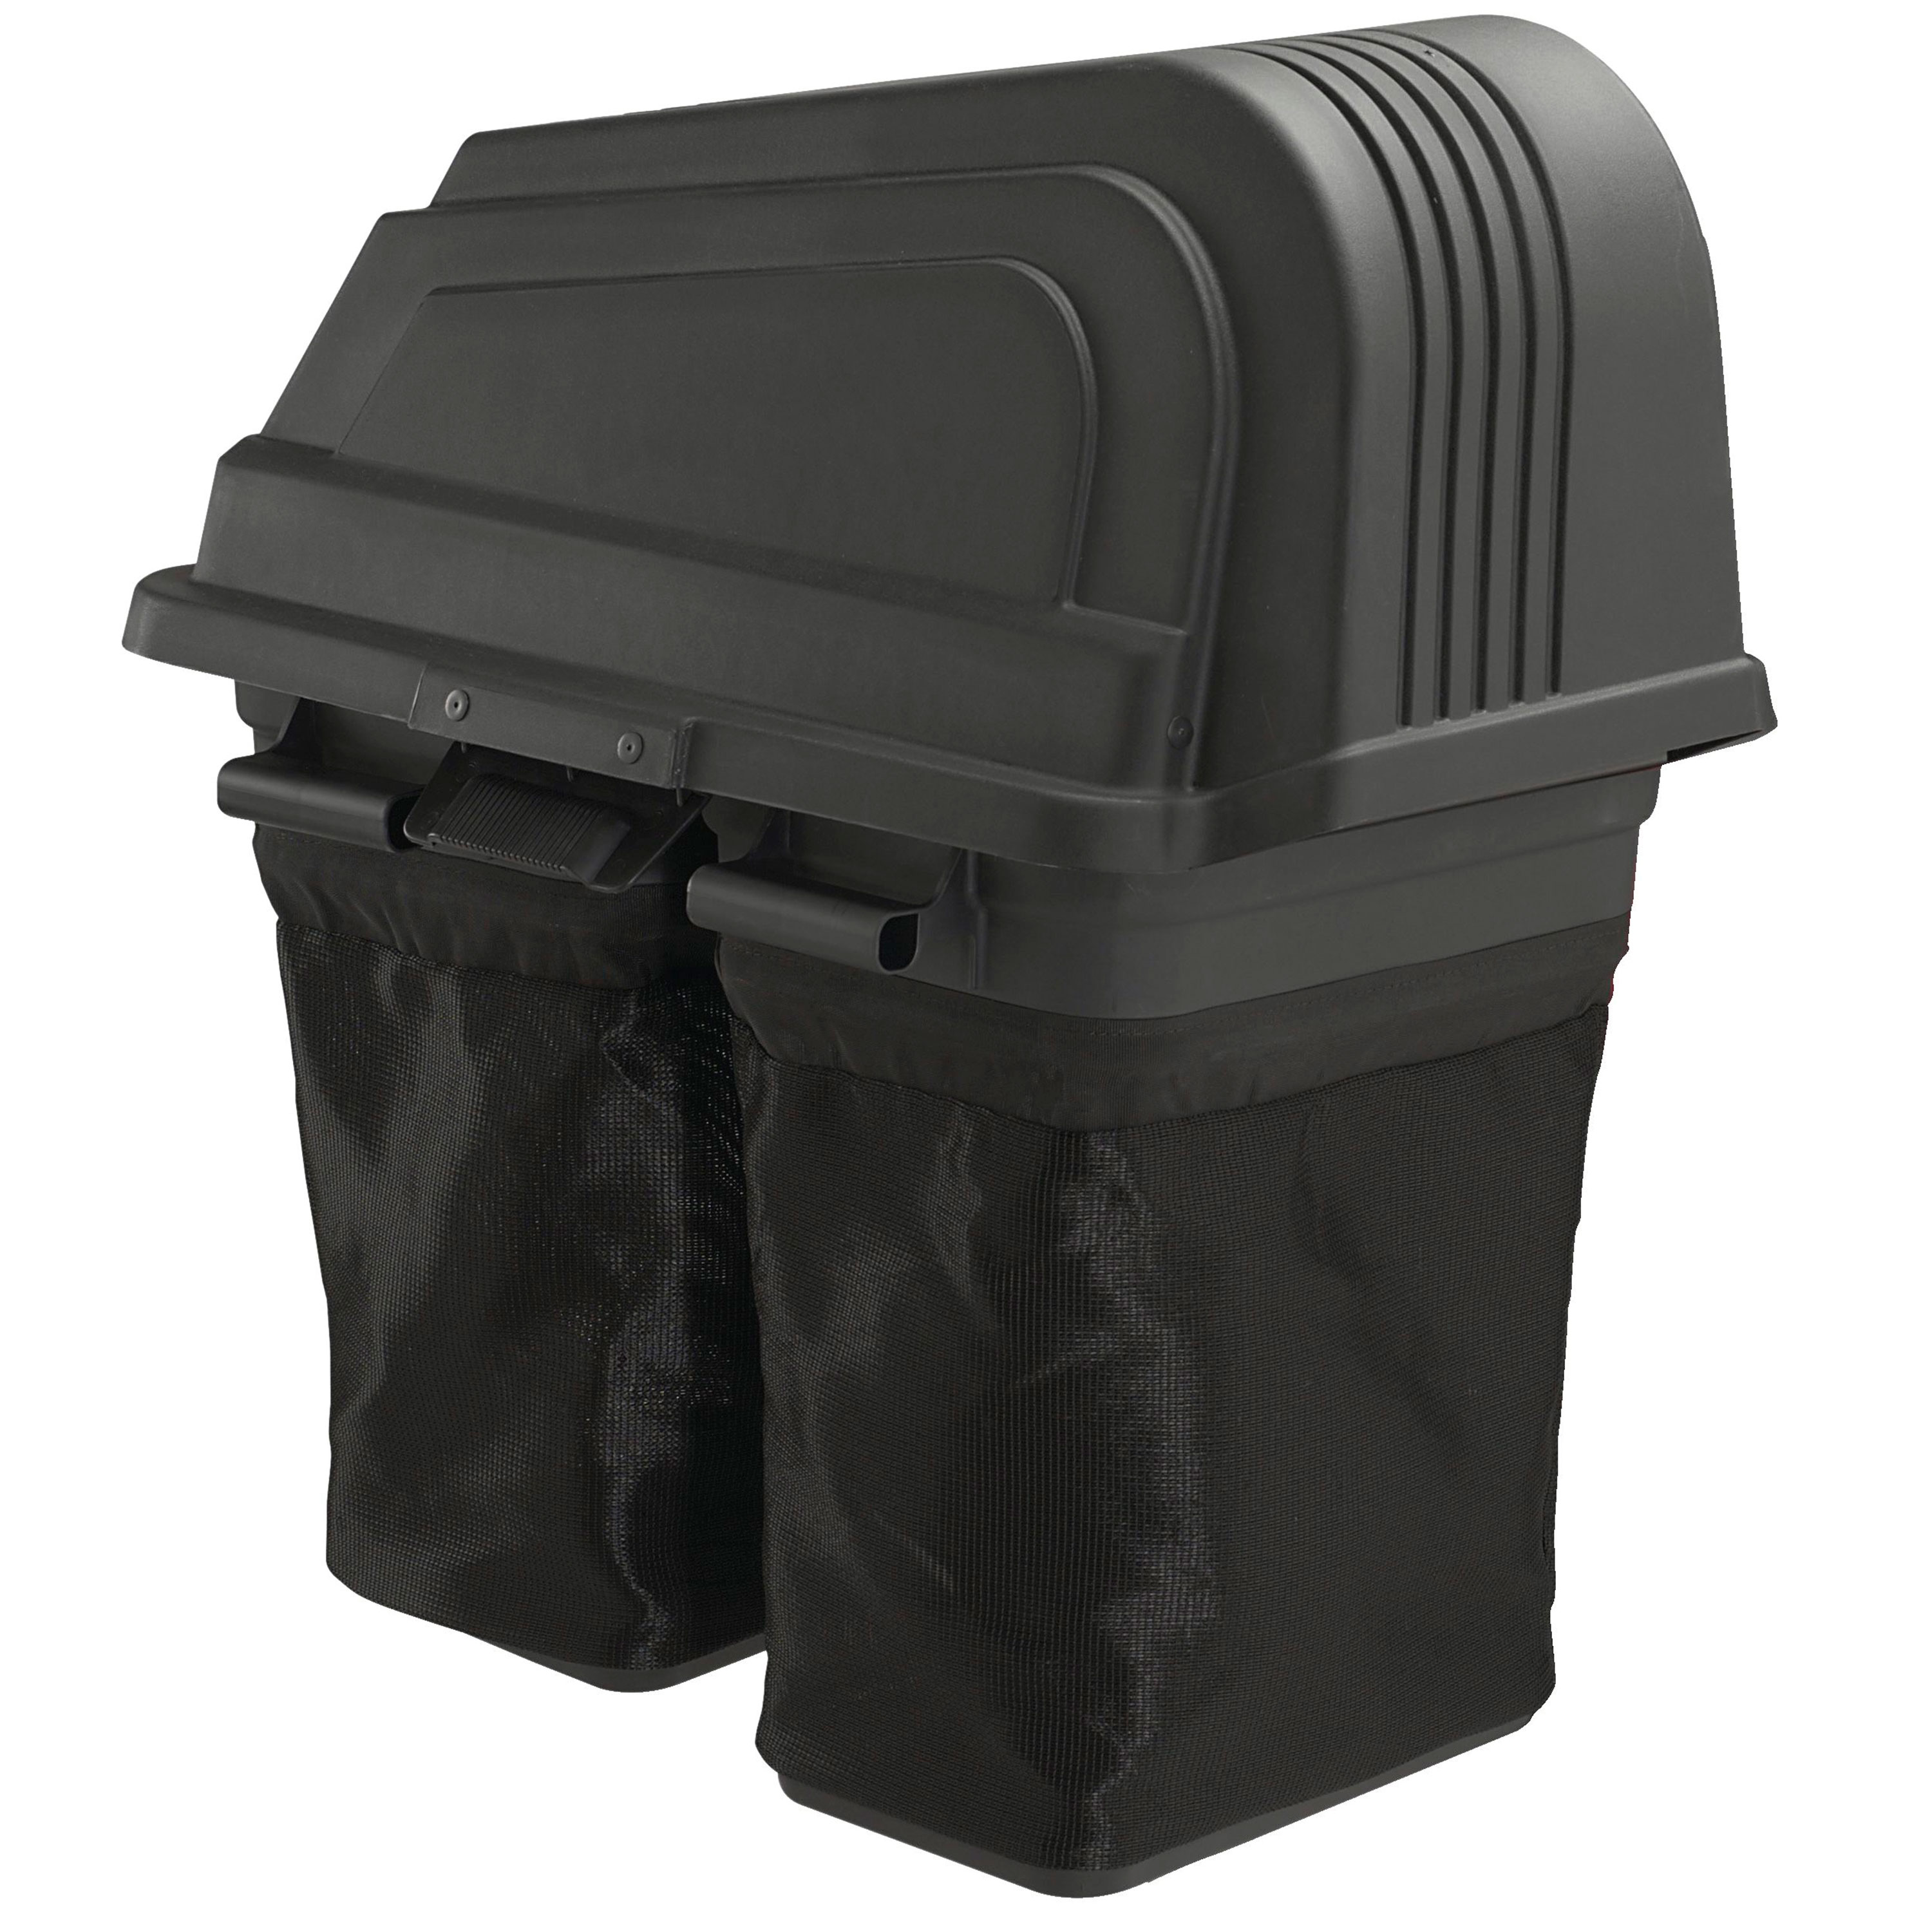 Poulan Pro 42 in. 2-Bin Soft-Sided Bagger/Collector